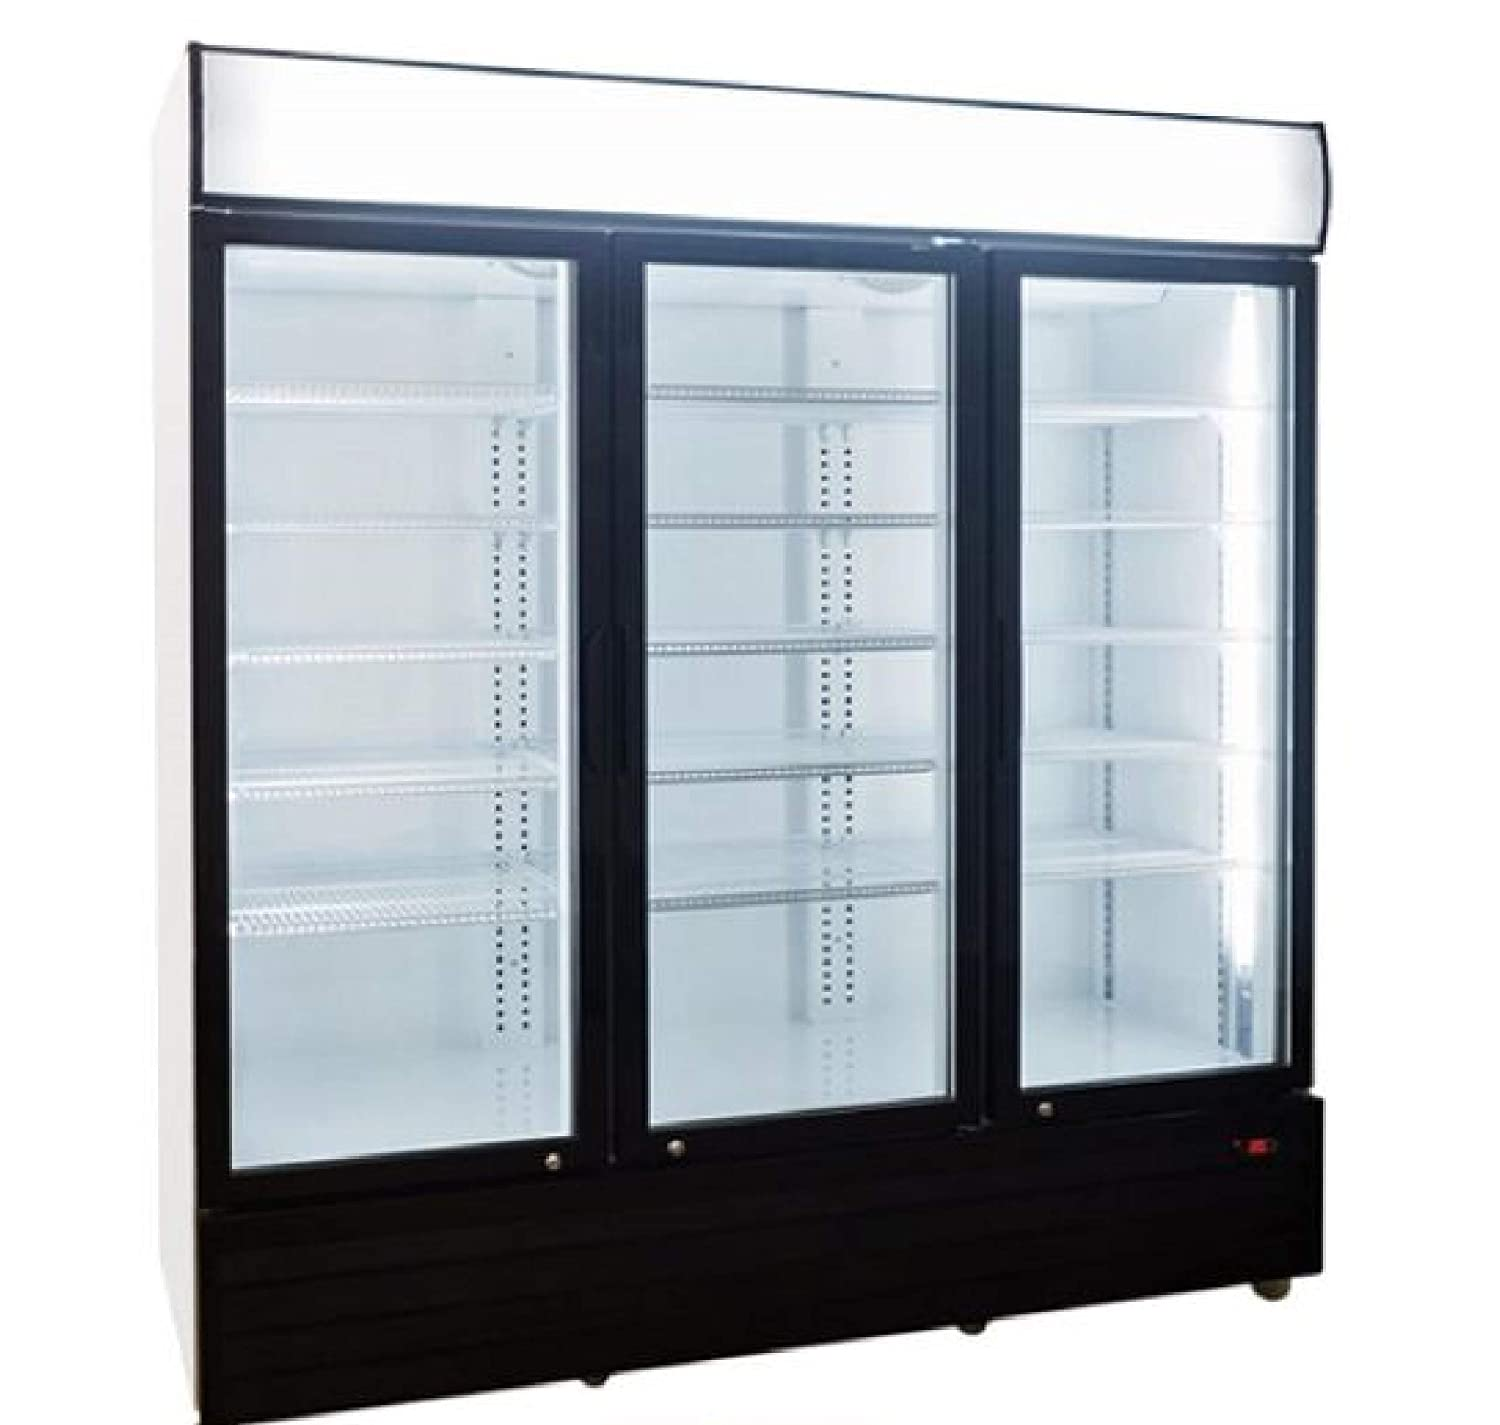 """68"""" Beverage Cooler and Refrigerator, NSF Commercial Fridge with 3 Glass Door, Perfect for Soda Beer Milk Water or Wine, 1840-Can Capacity"""